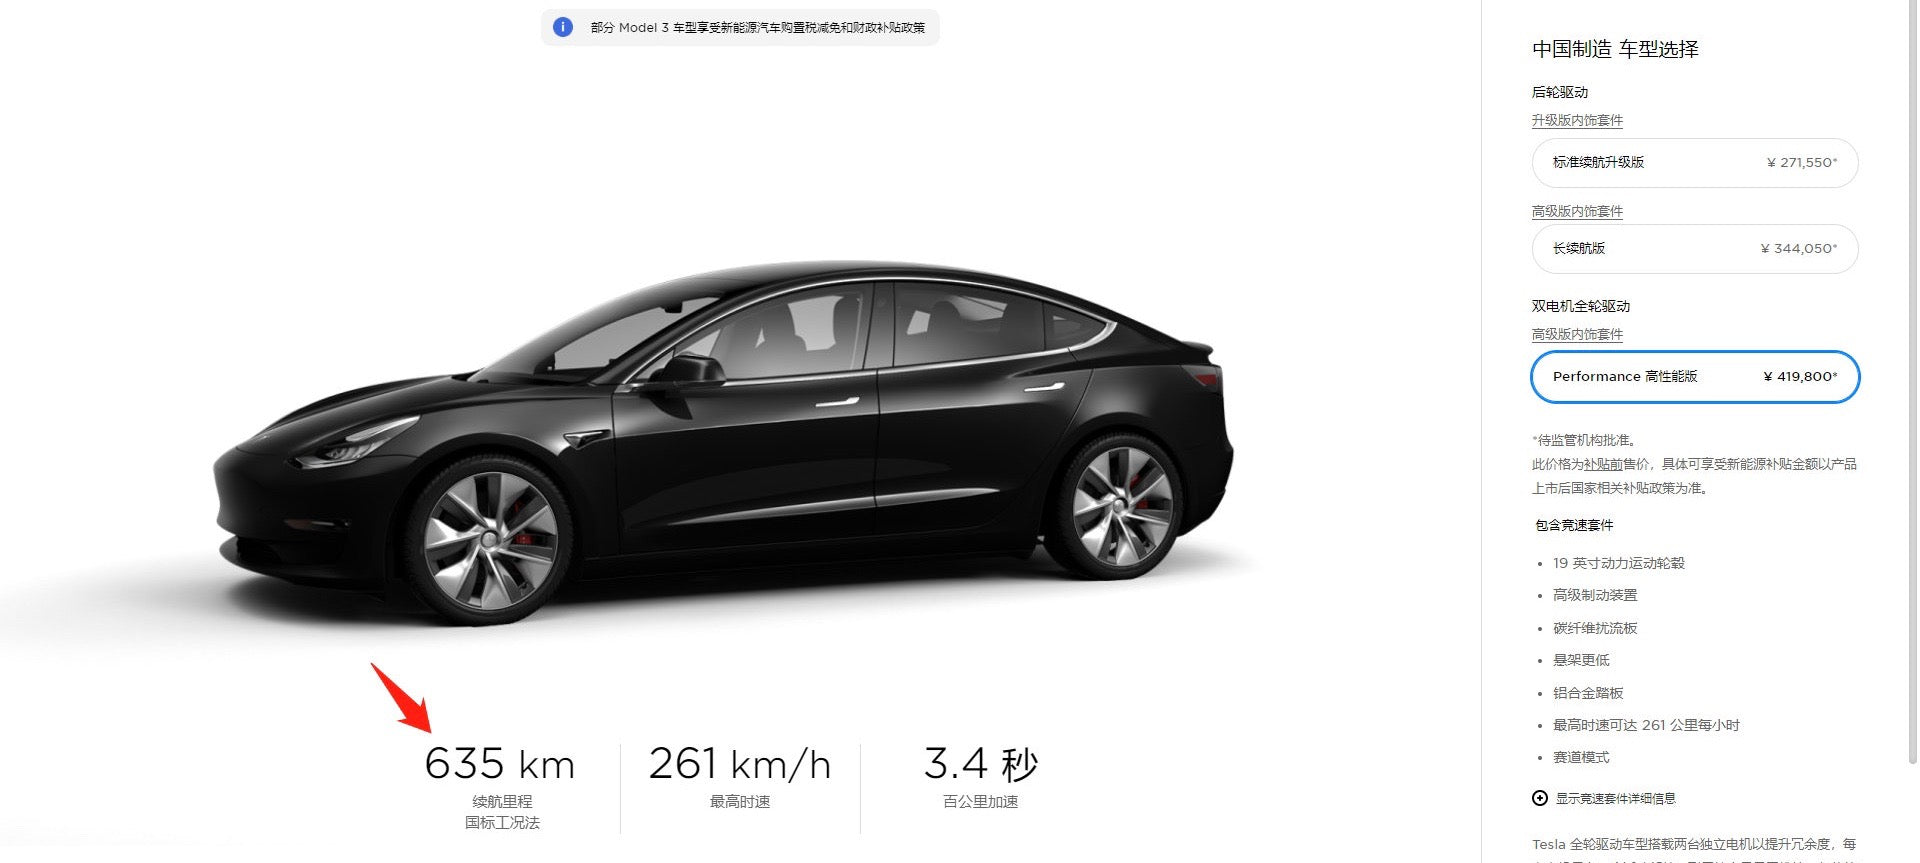 Tesla-Giga-Shanghai-Performance-Model-3-635-km